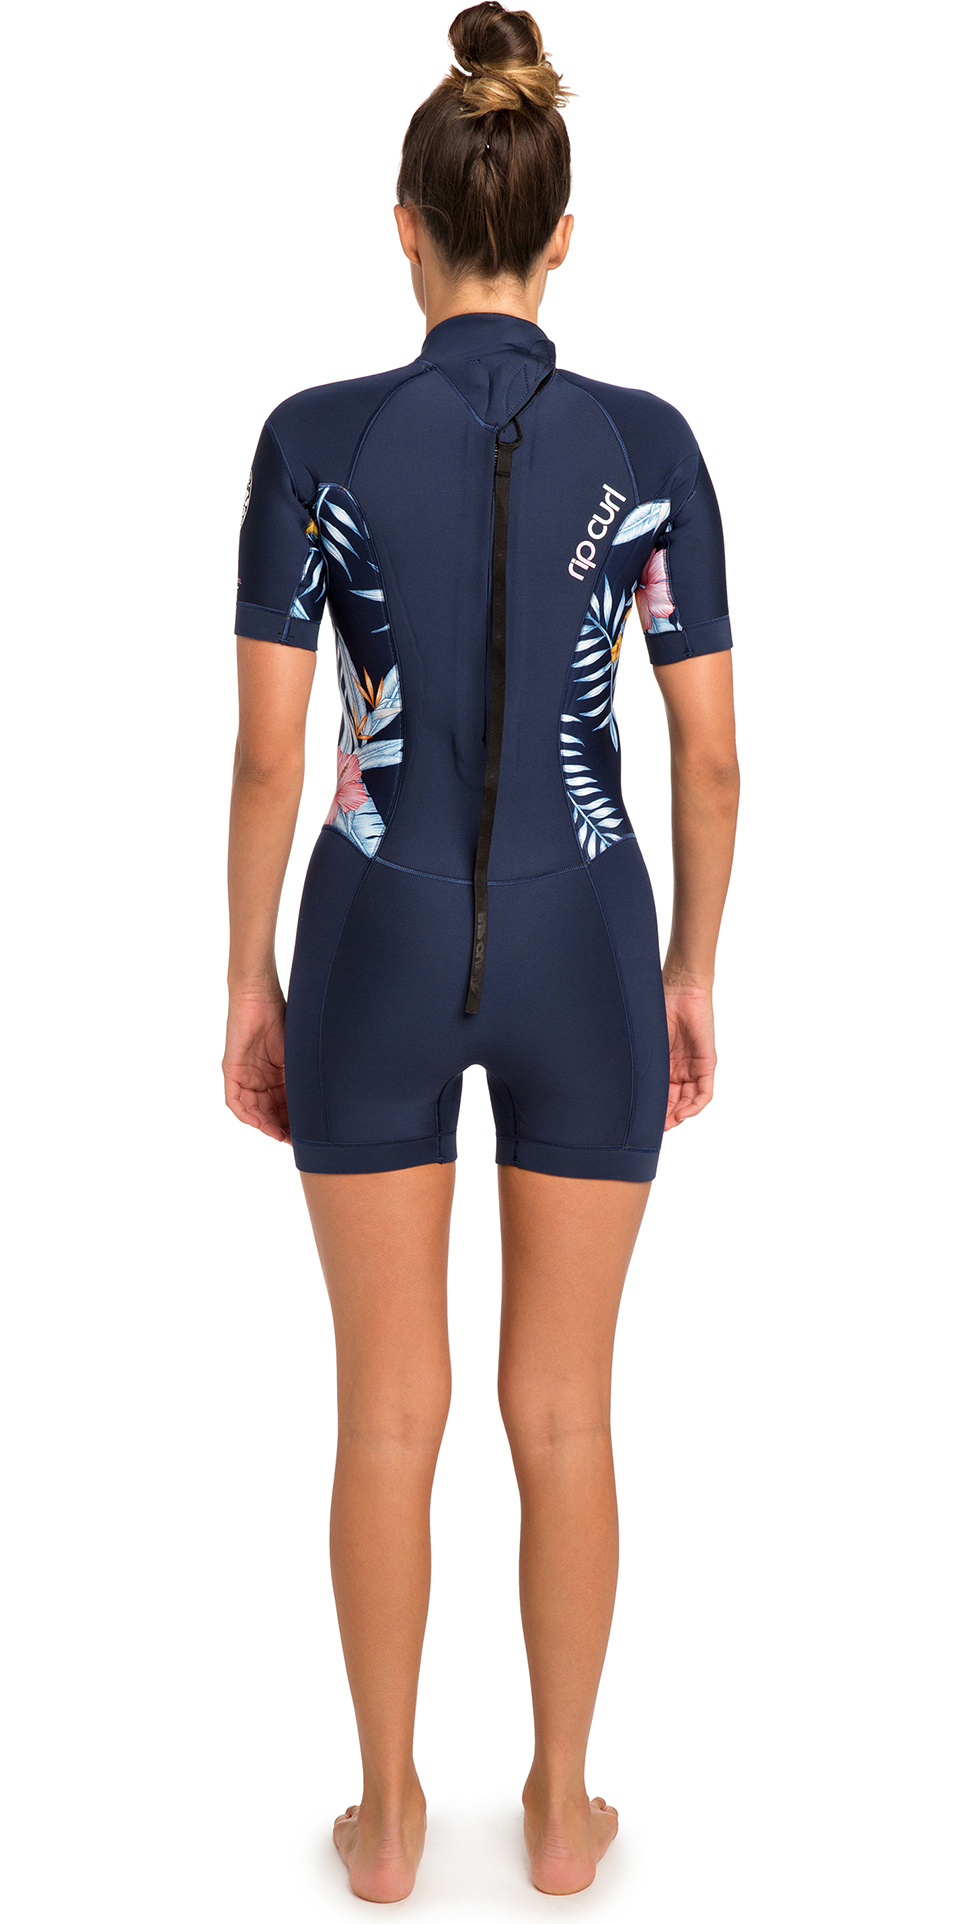 81ef81fd14 2019 Rip Curl Womens Dawn Patrol 2mm Back Zip Shorty Wetsuit Navy WSP8FW ...